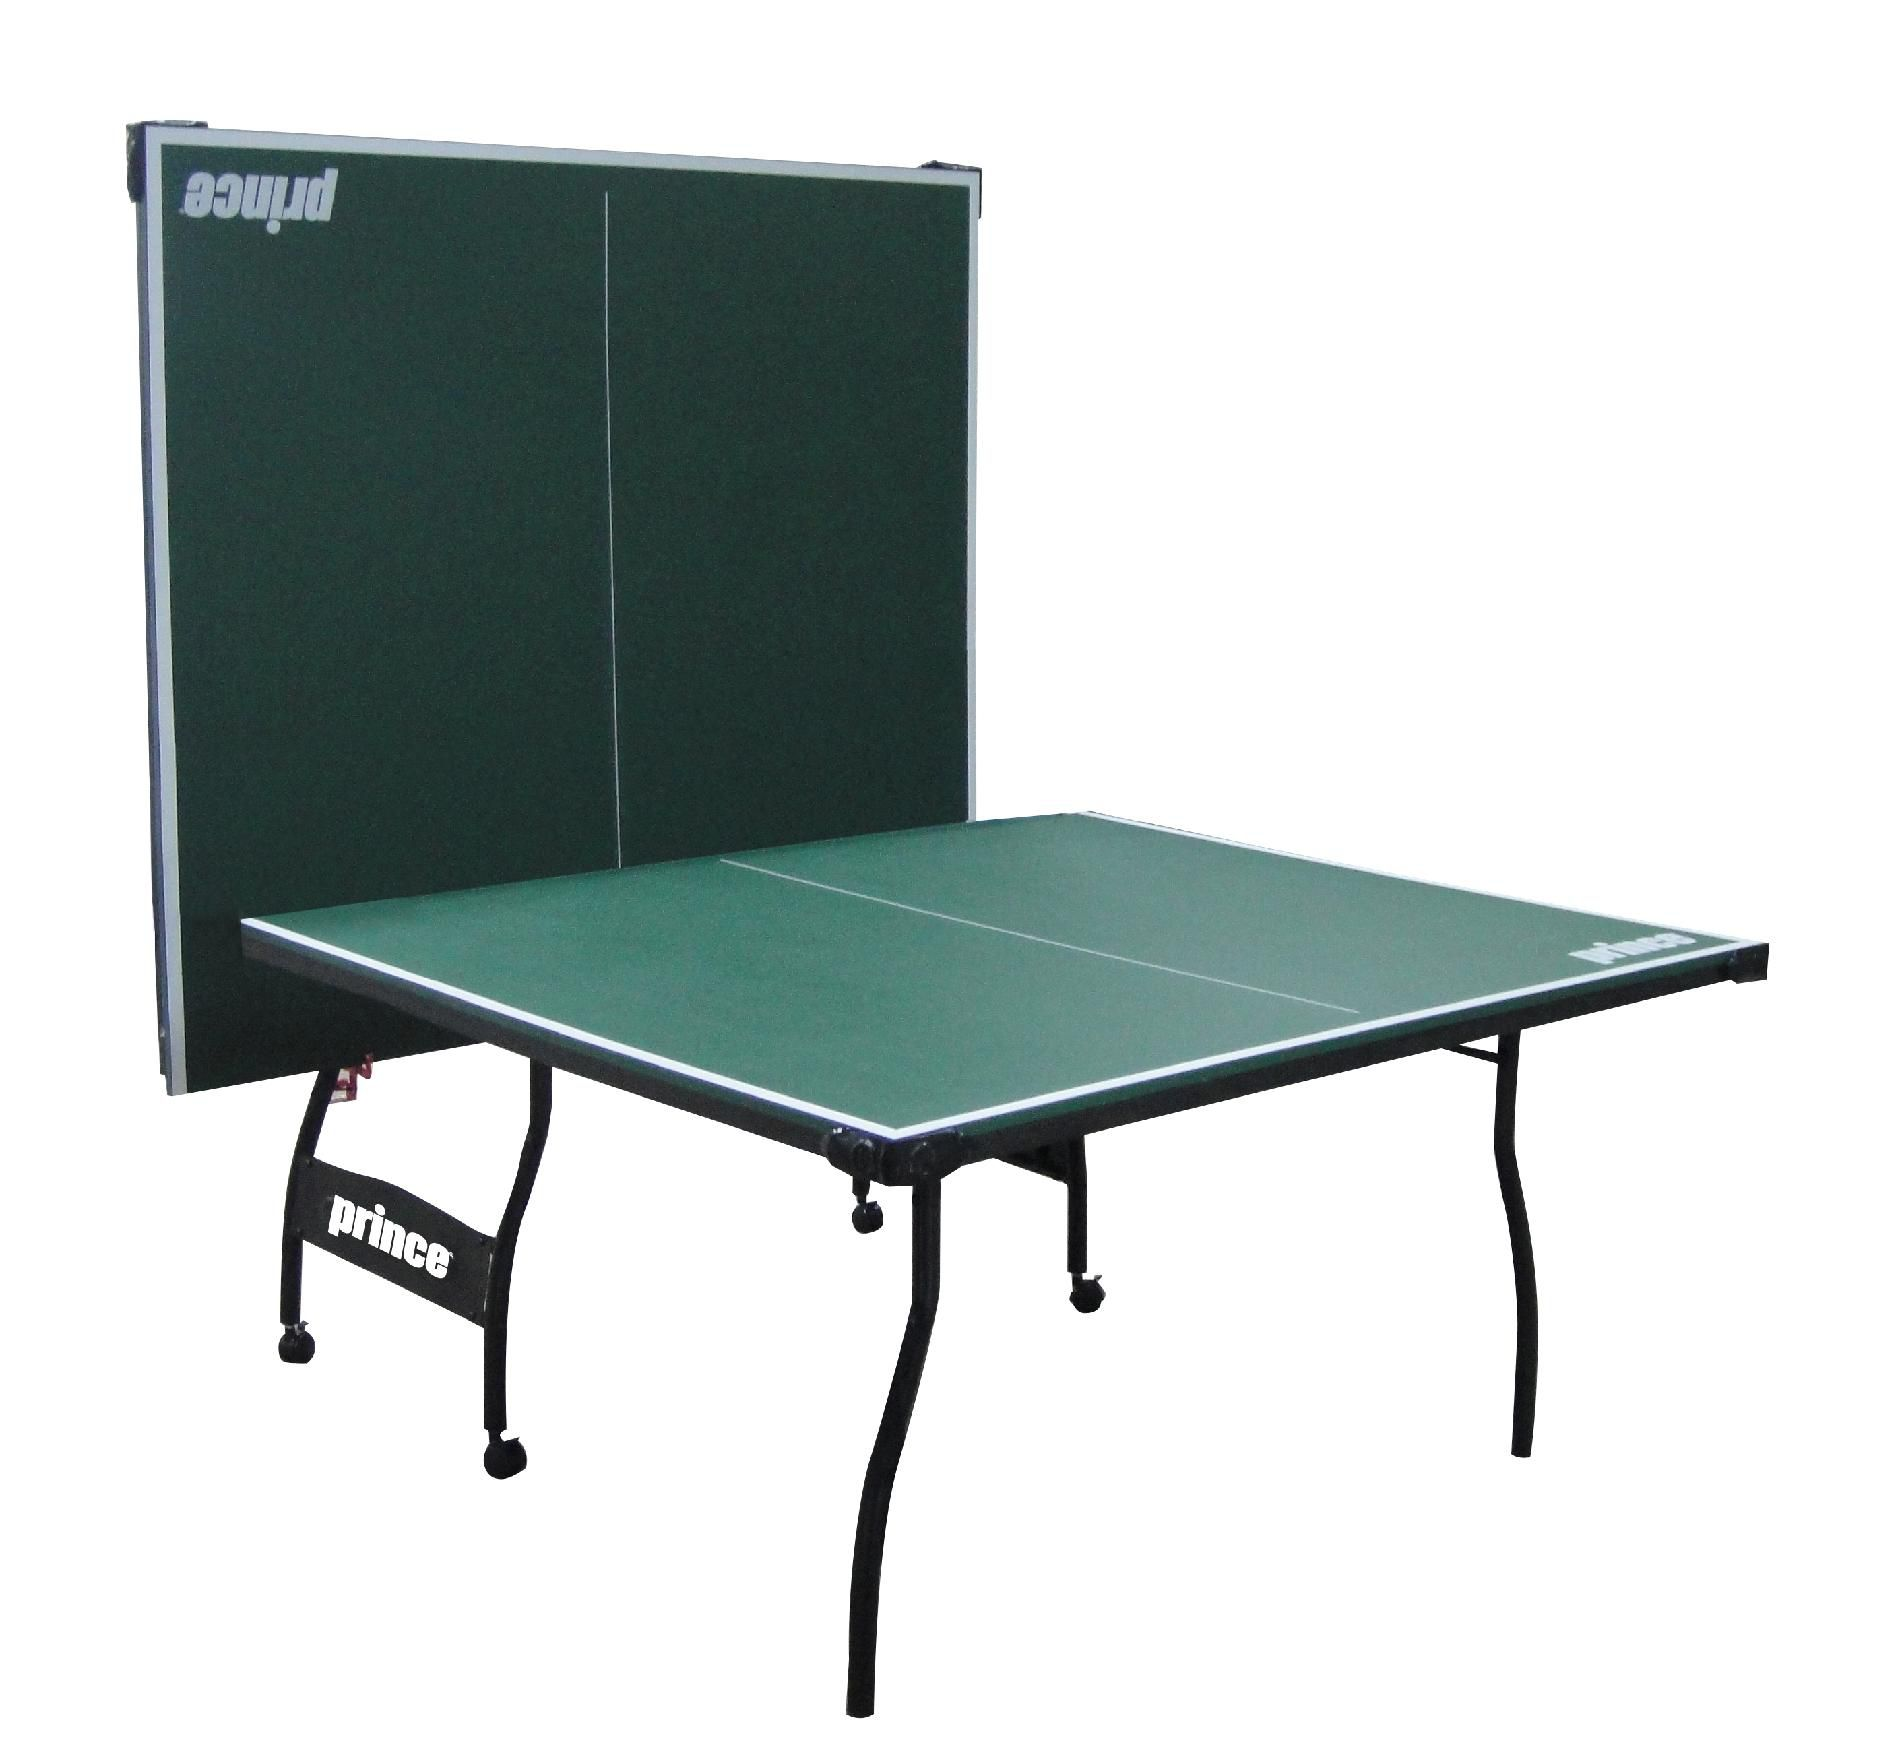 Prince Victory Table Tennis Table - Green